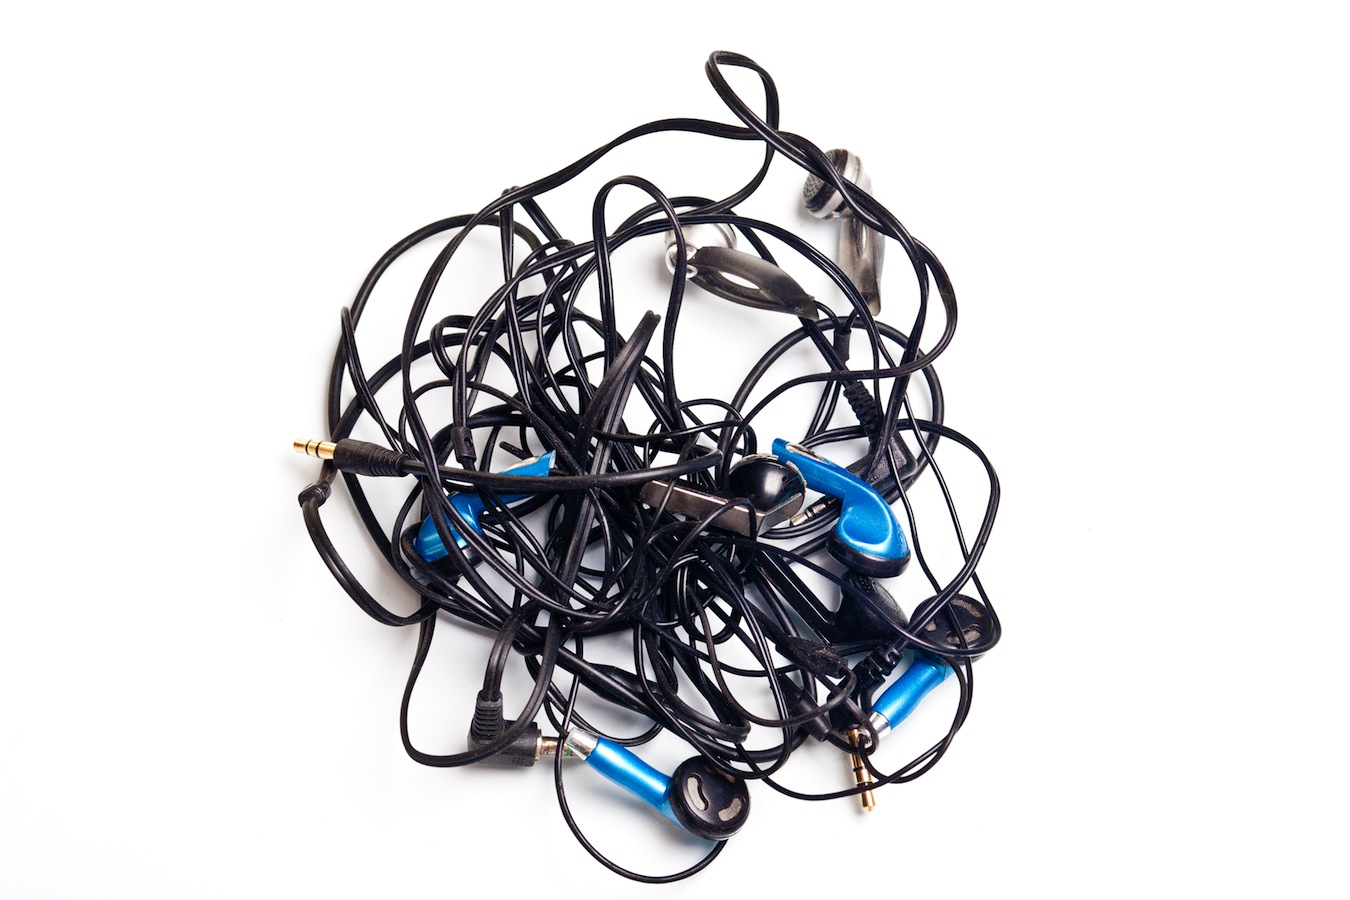 Click here to read Why Aren't There Any Good Headphones With Retractable Cables?